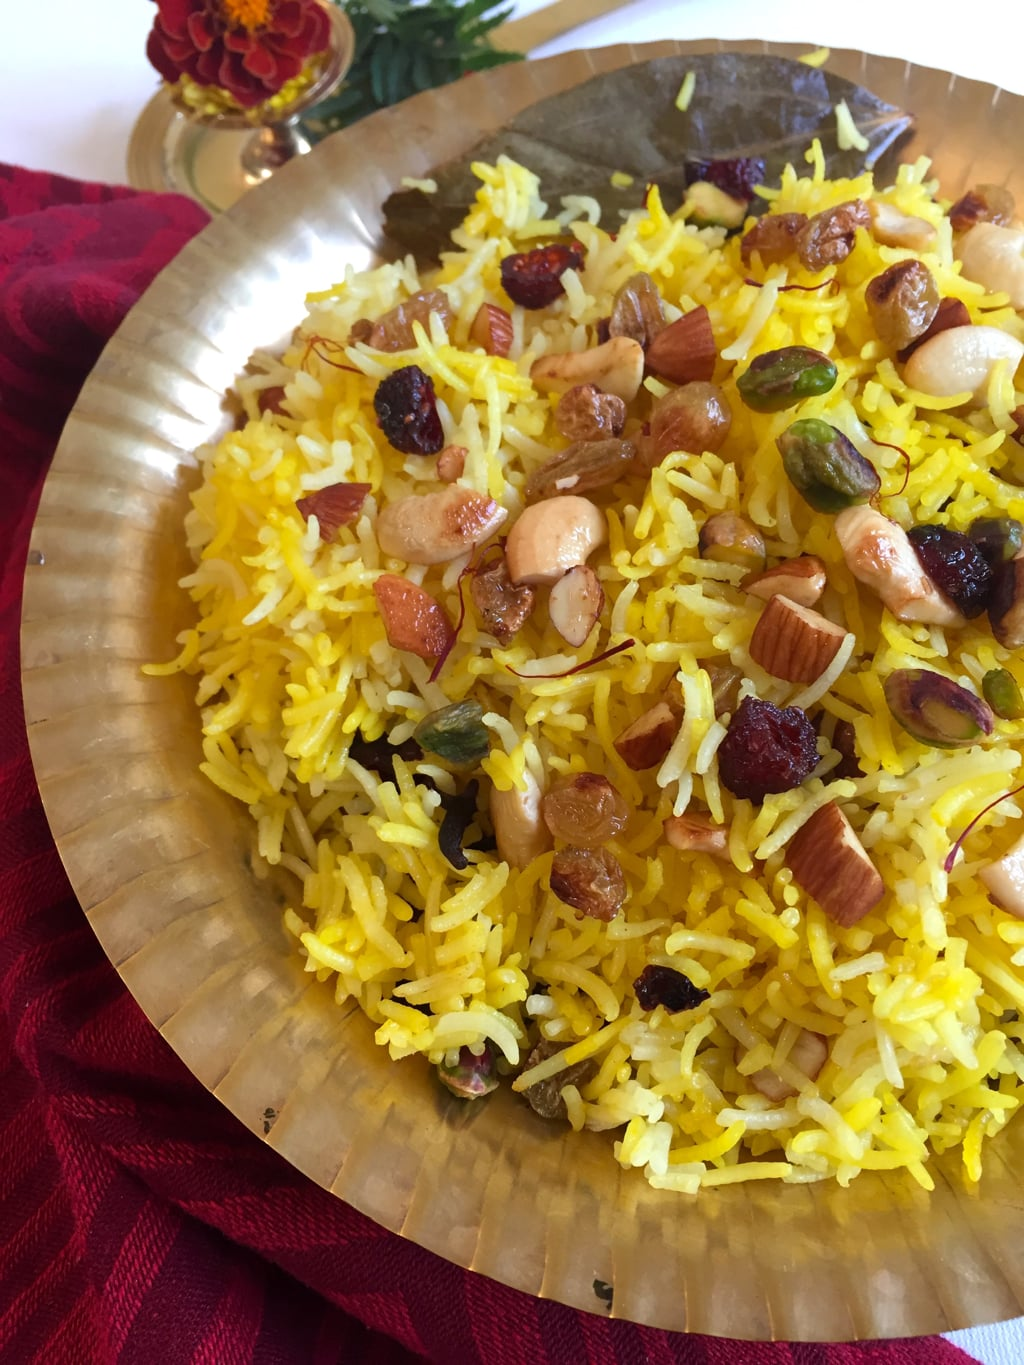 Saffron Rice With Fruits And Nuts Recipe Saffron Trail